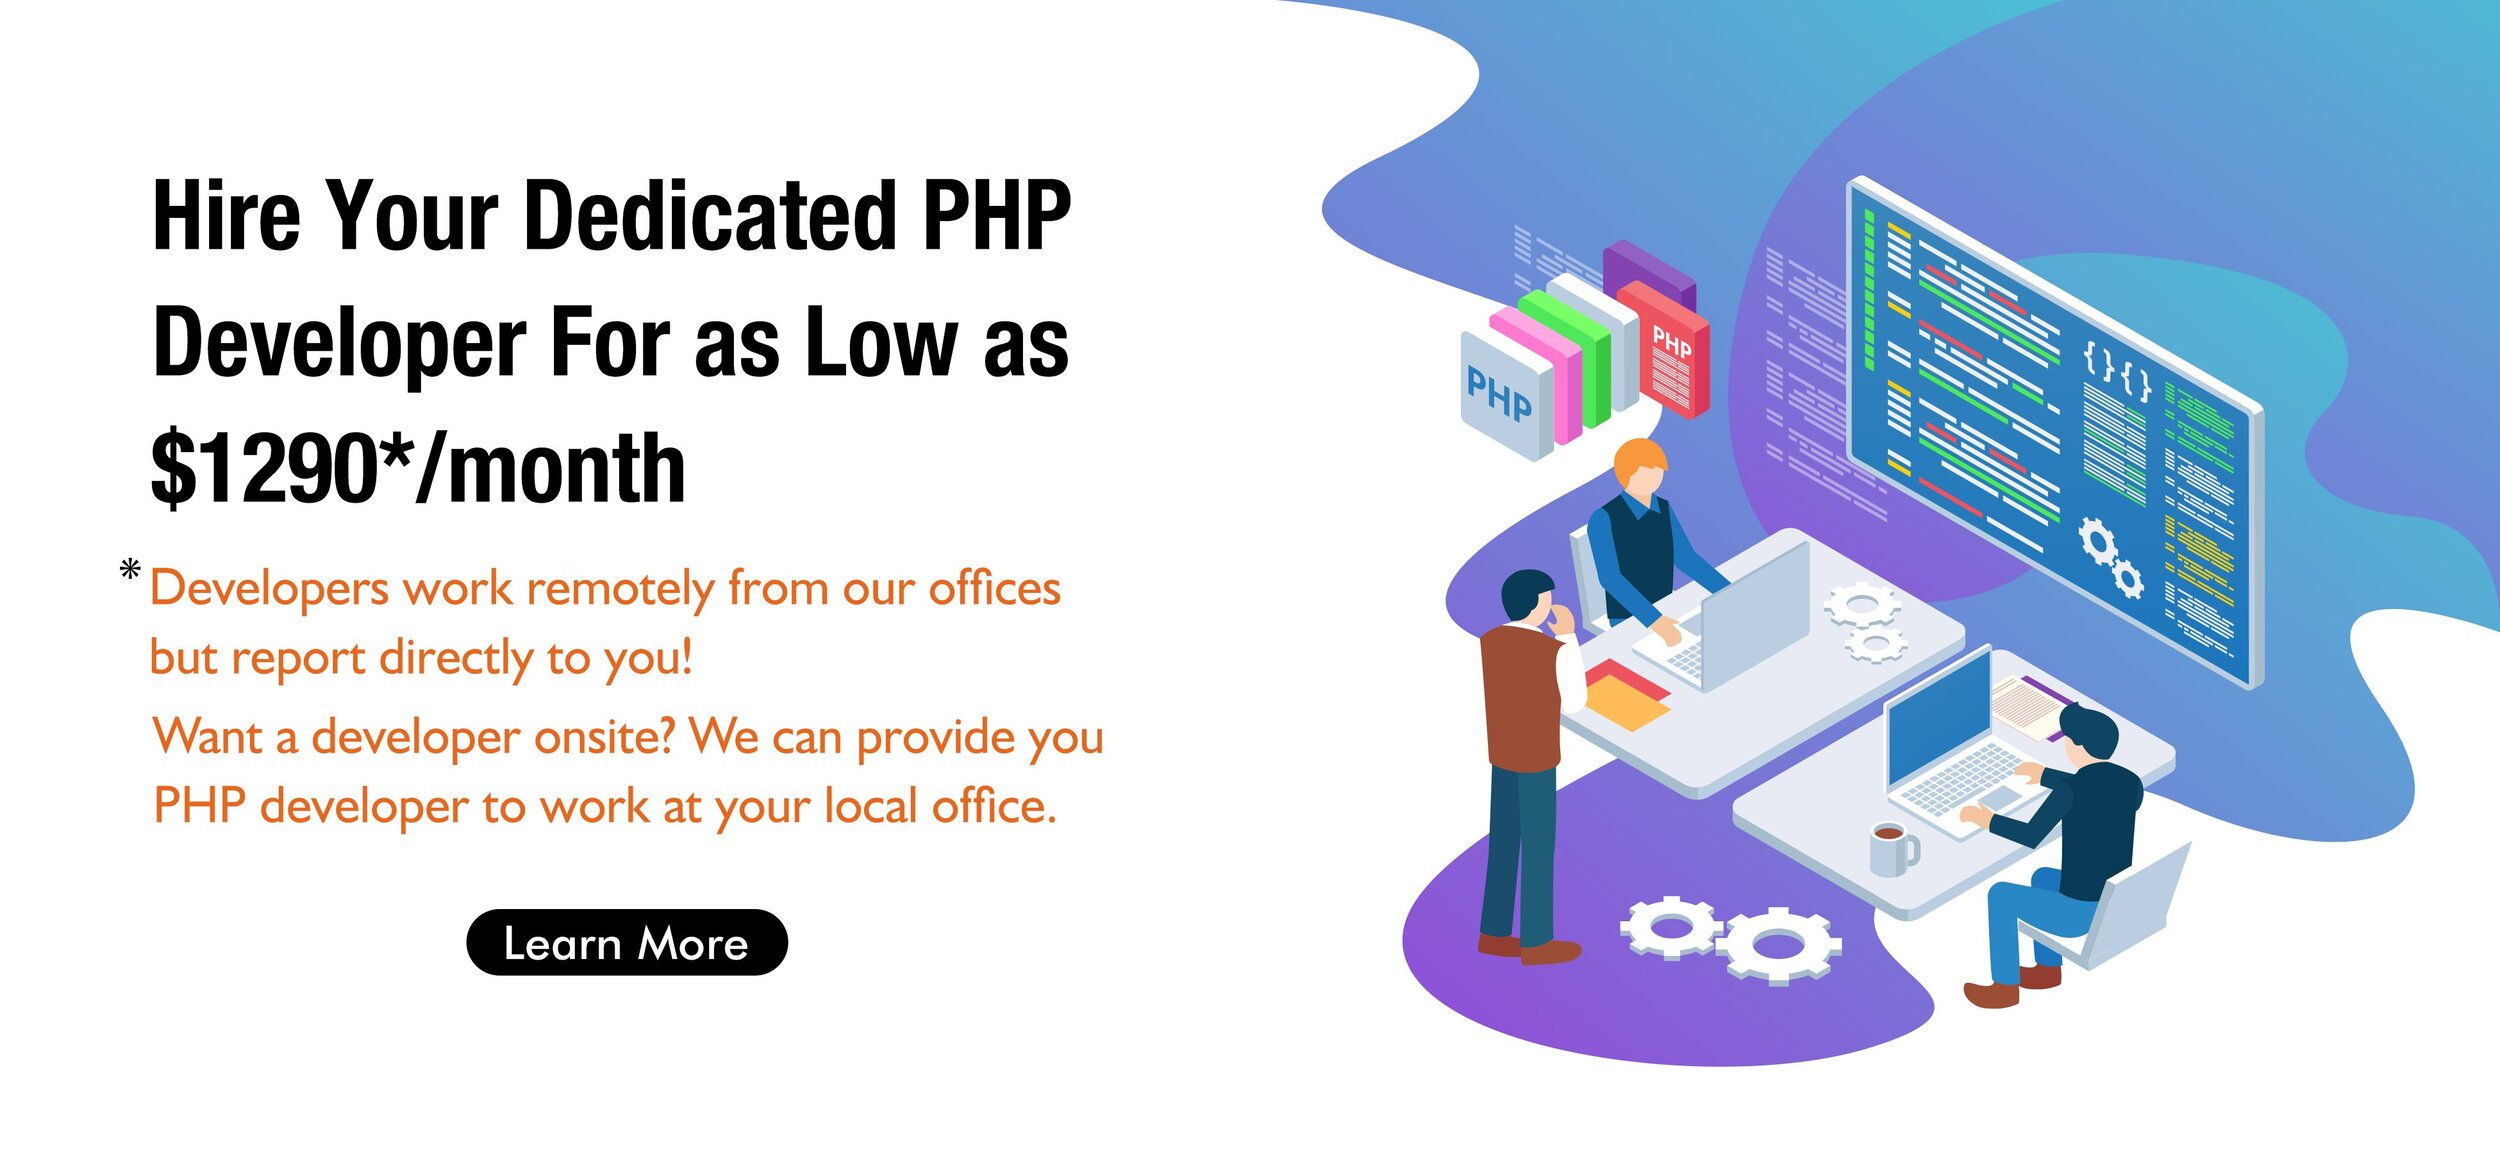 Hire PHP Developer For $1290* a Month